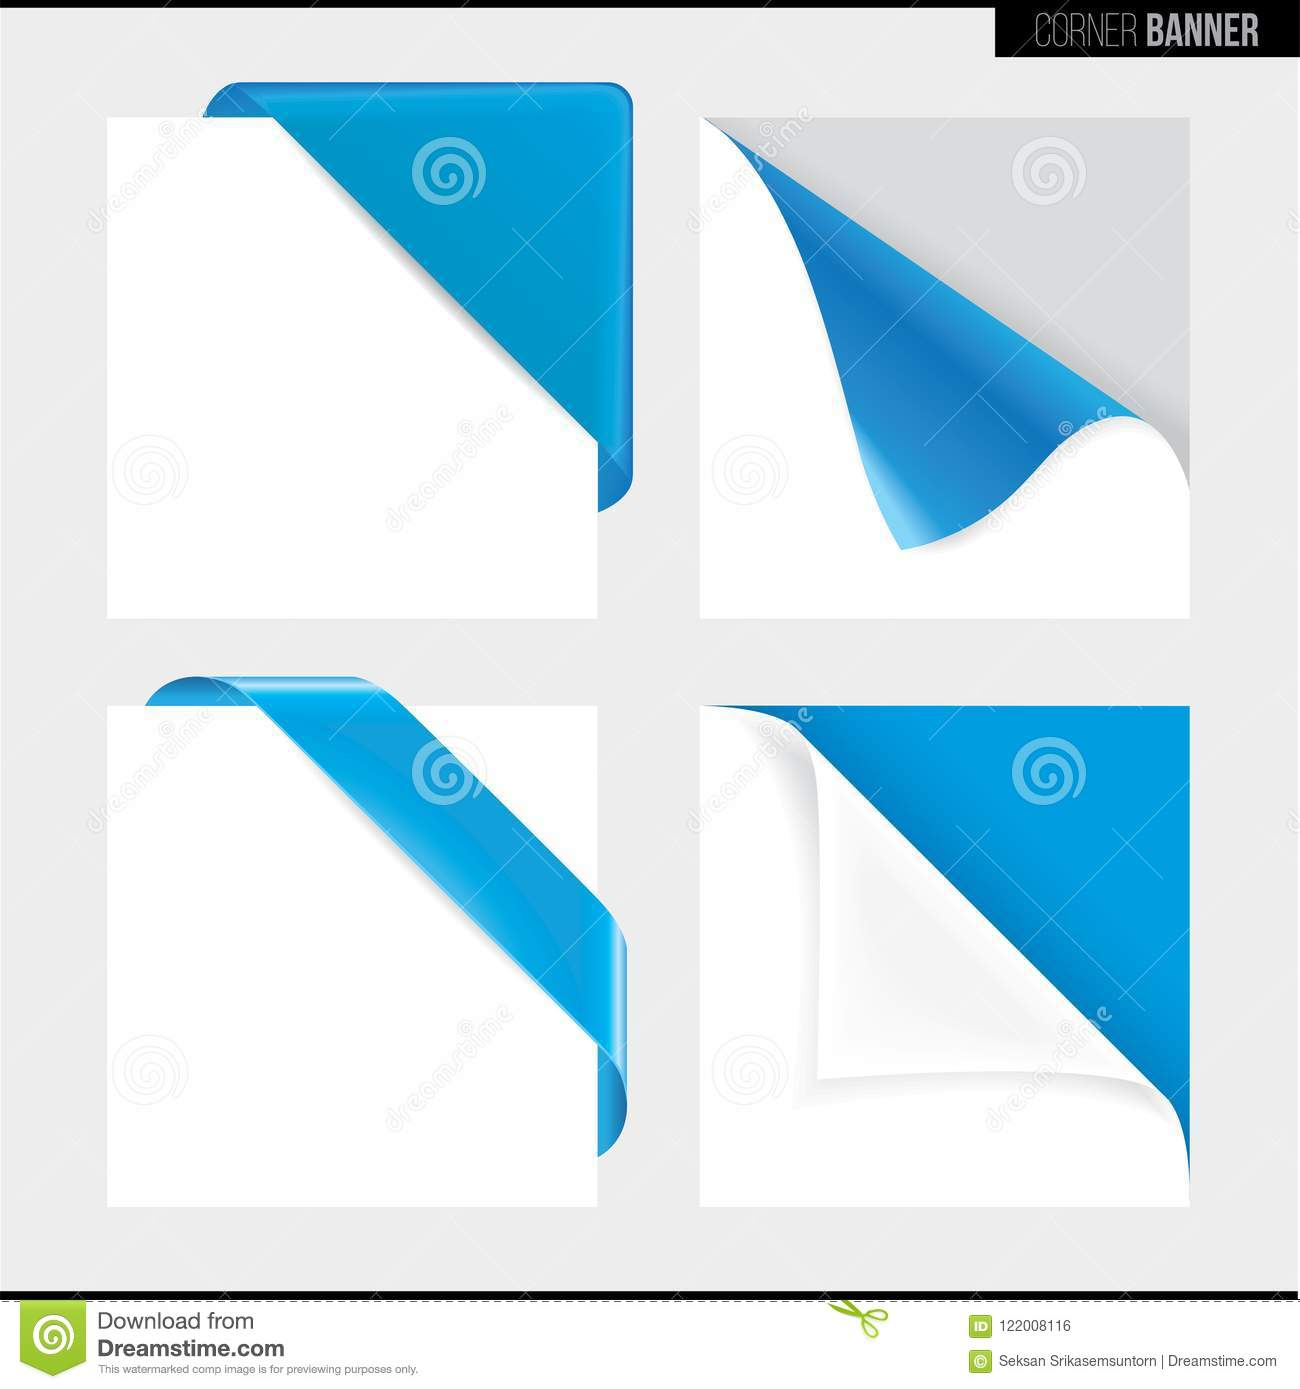 Blue color corner banner, vector illustration